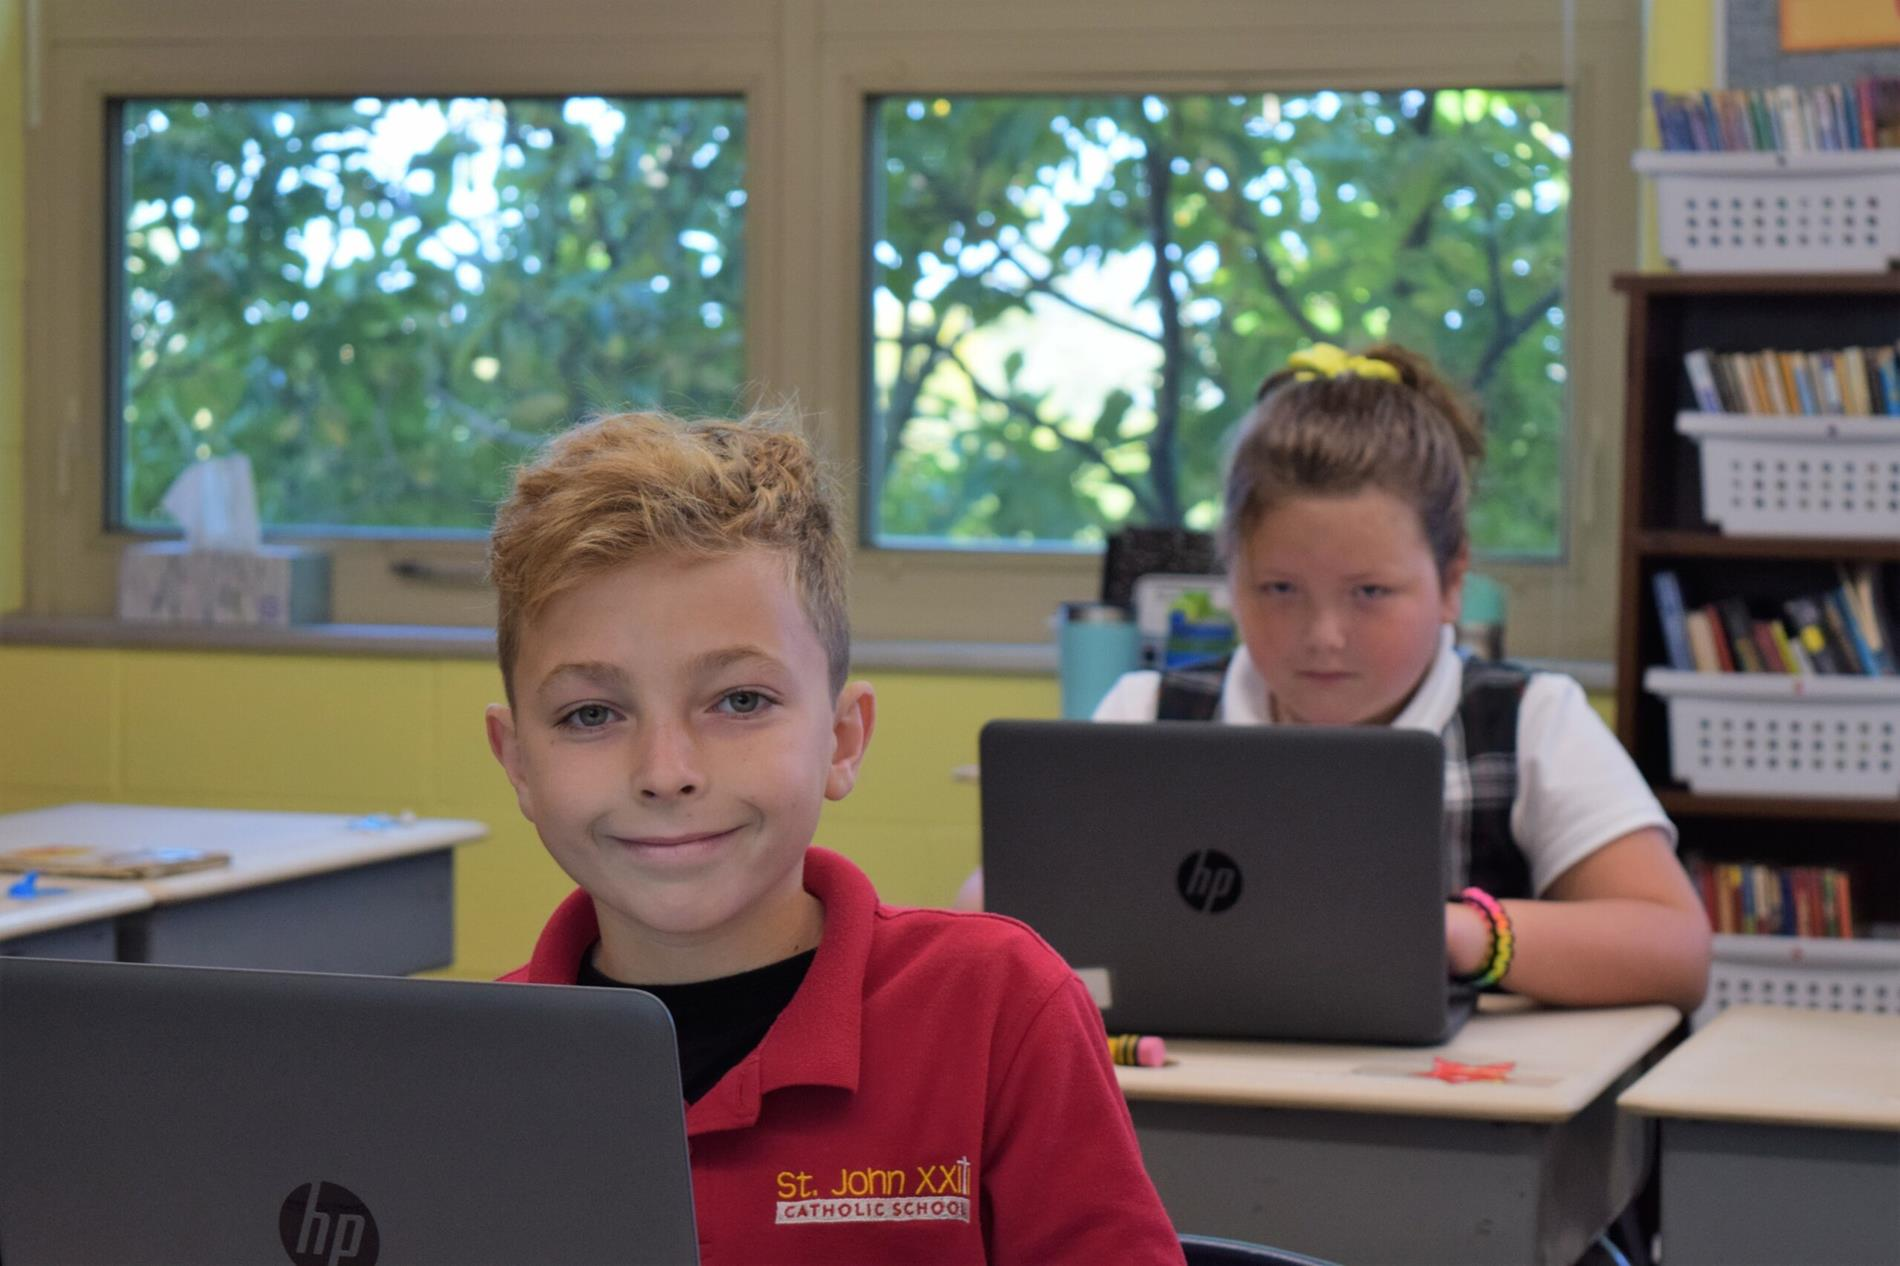 boy and girl at desk working on laptop